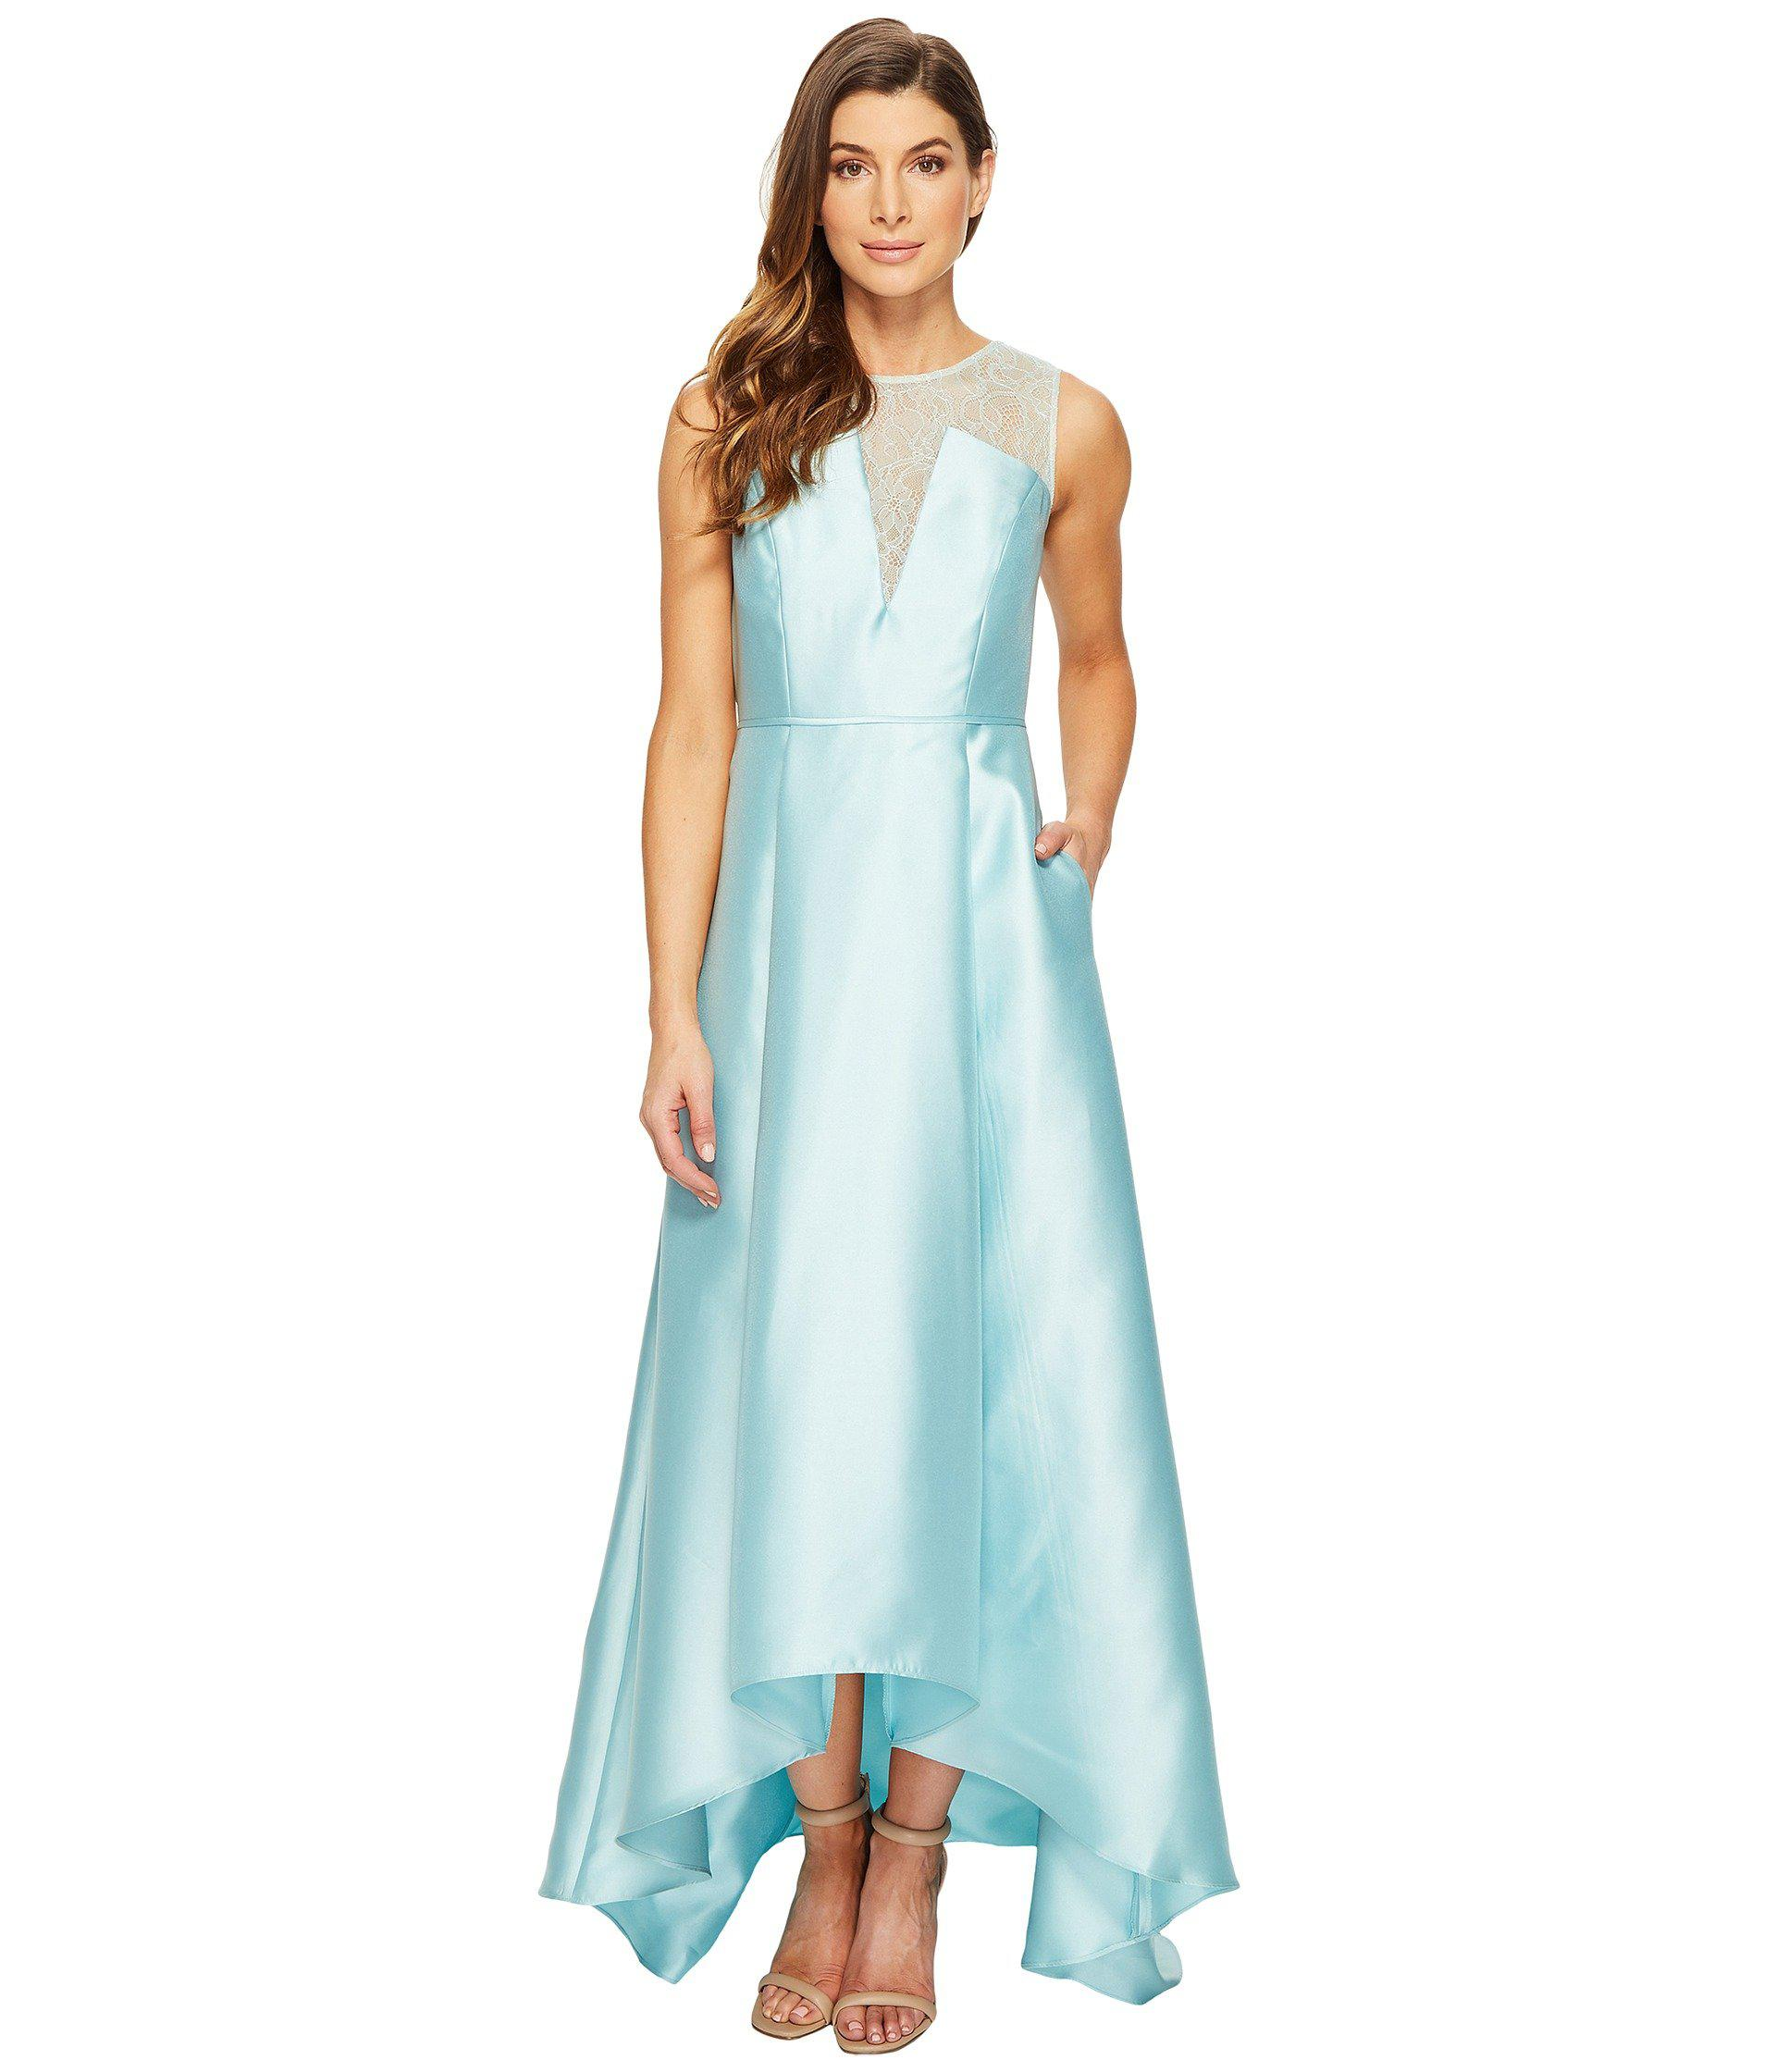 18bc6980e23c6 Lyst - Adrianna Papell Lace Bodice Yoke And Mikado Combo Ball Gown ...